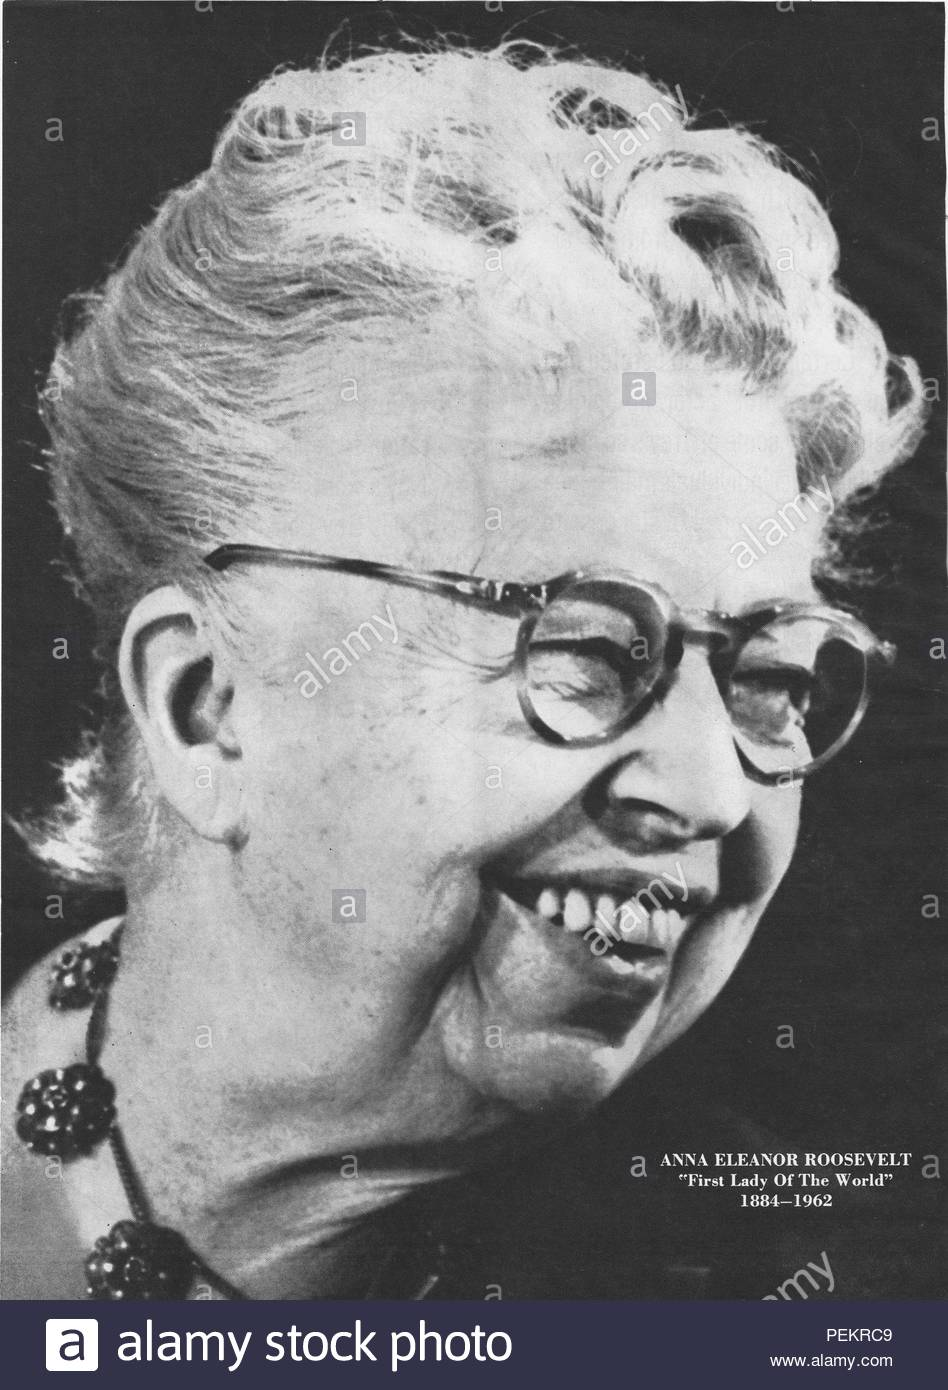 Eleanor Roosevelt (October 11, 1884 – November 7, 1962) was an American political figure, diplomat and activist. She served as the First Lady of the United States from 1933 to 1945 during her husband President Franklin D. Roosevelt's four terms in office, making her the longest serving First Lady of the United States. She served as United States Delegate to the United Nations General Assembly from 1945 to 1952. President Harry S. Truman later called her the 'First Lady of the World' in tribute to her human rights achievements. - Stock Image